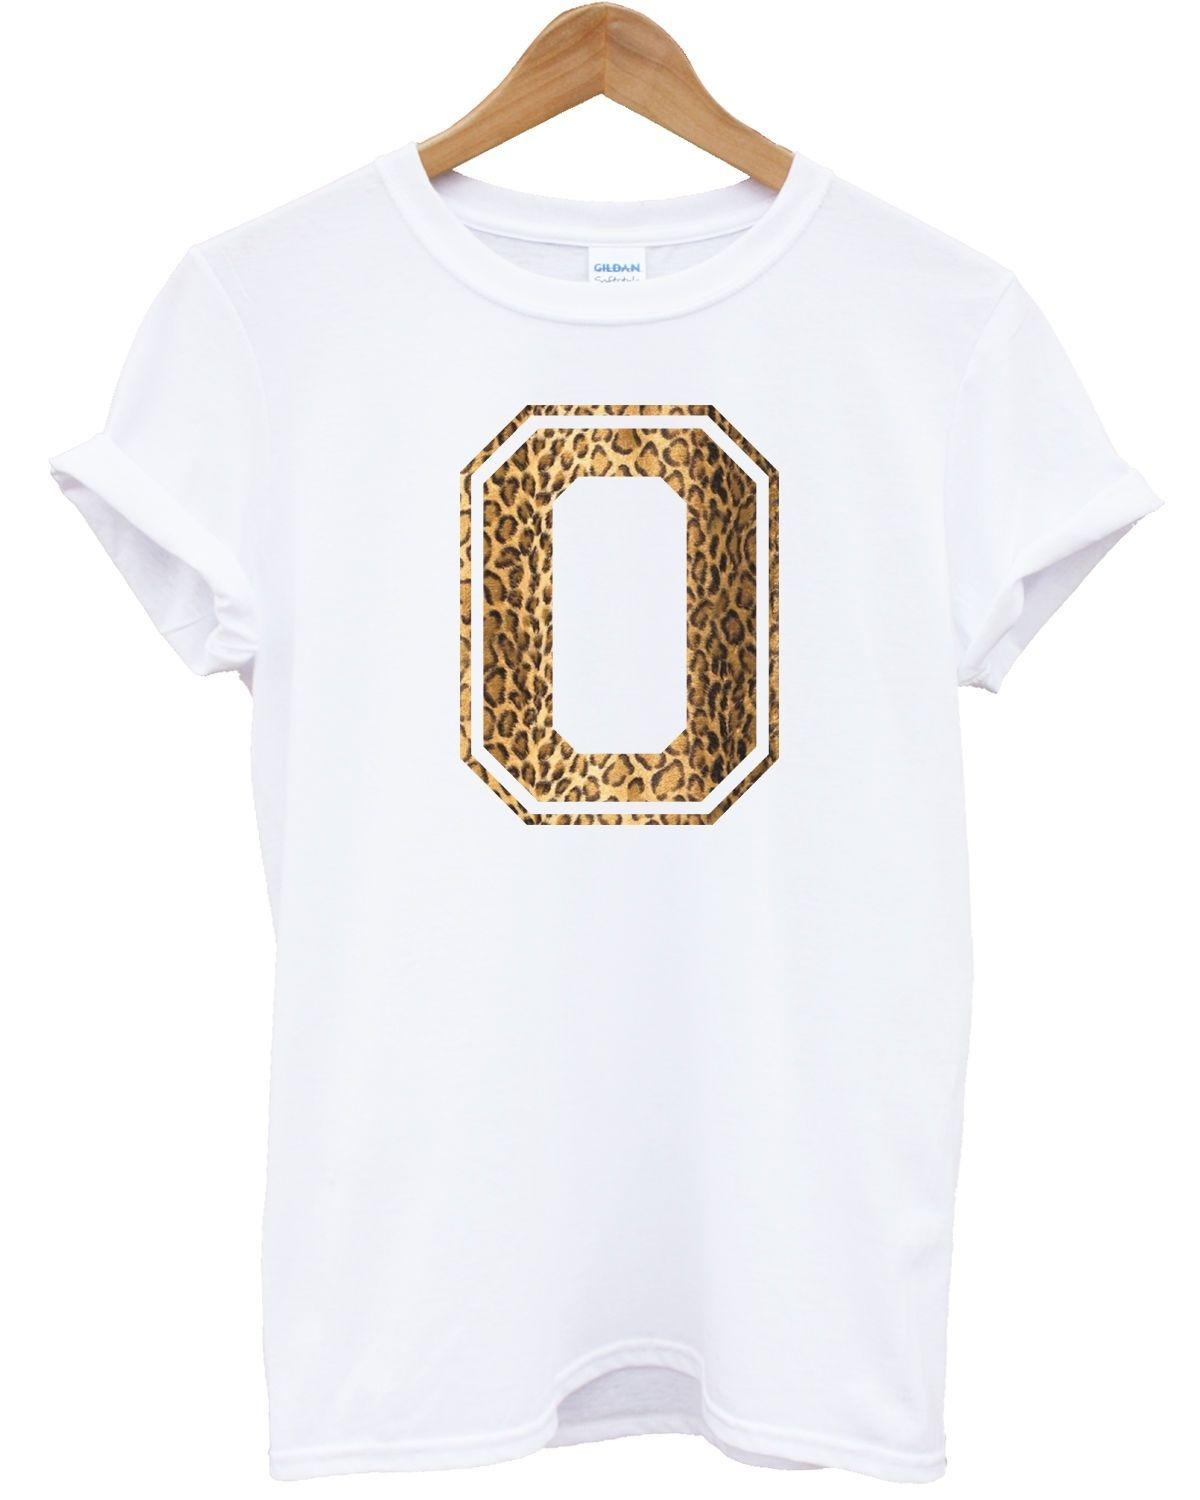 O Leopard Letter Printed T Shirt Mens Womens Kids Personal Zebra Animal  Graphic Men Women Unisex Fashion Tshirt T Shirts For Sale Printed T Shirt  From ... 8b920f73be